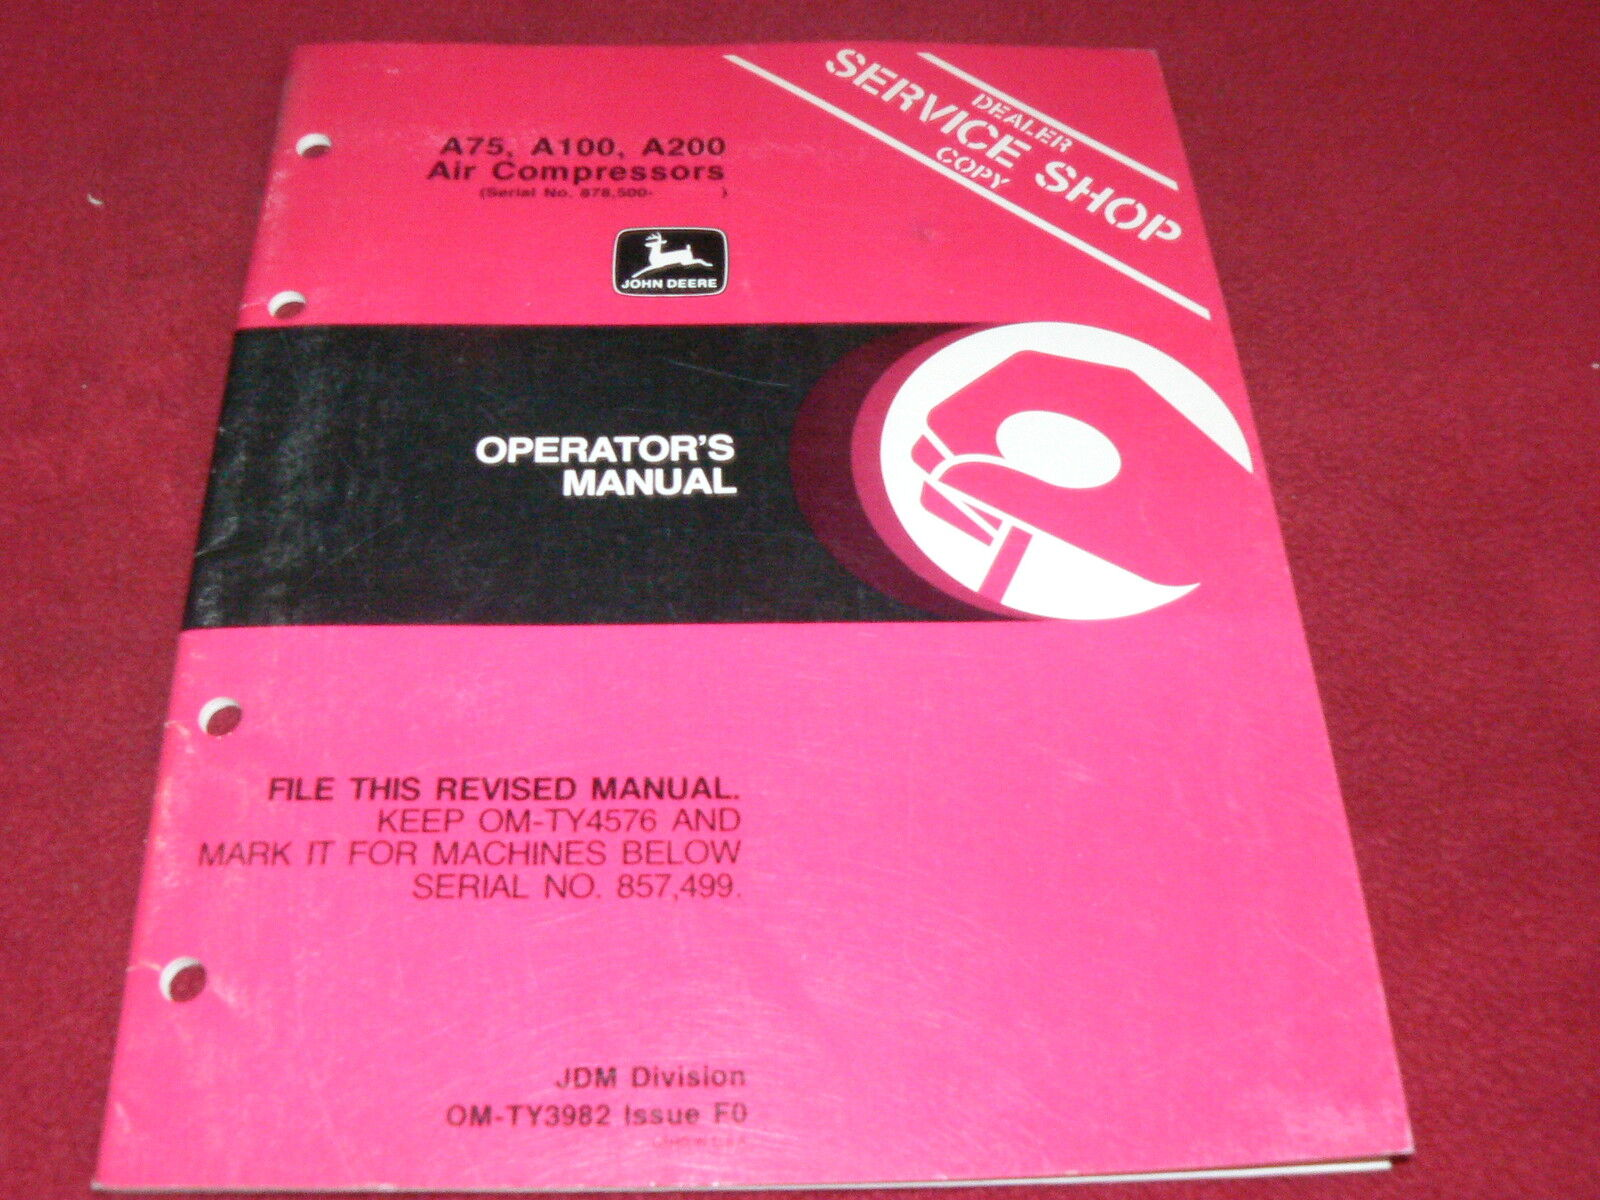 John Deere A75 A100 A200 Air Compressor Operator's Manual 1 of 1Only 1  available ...